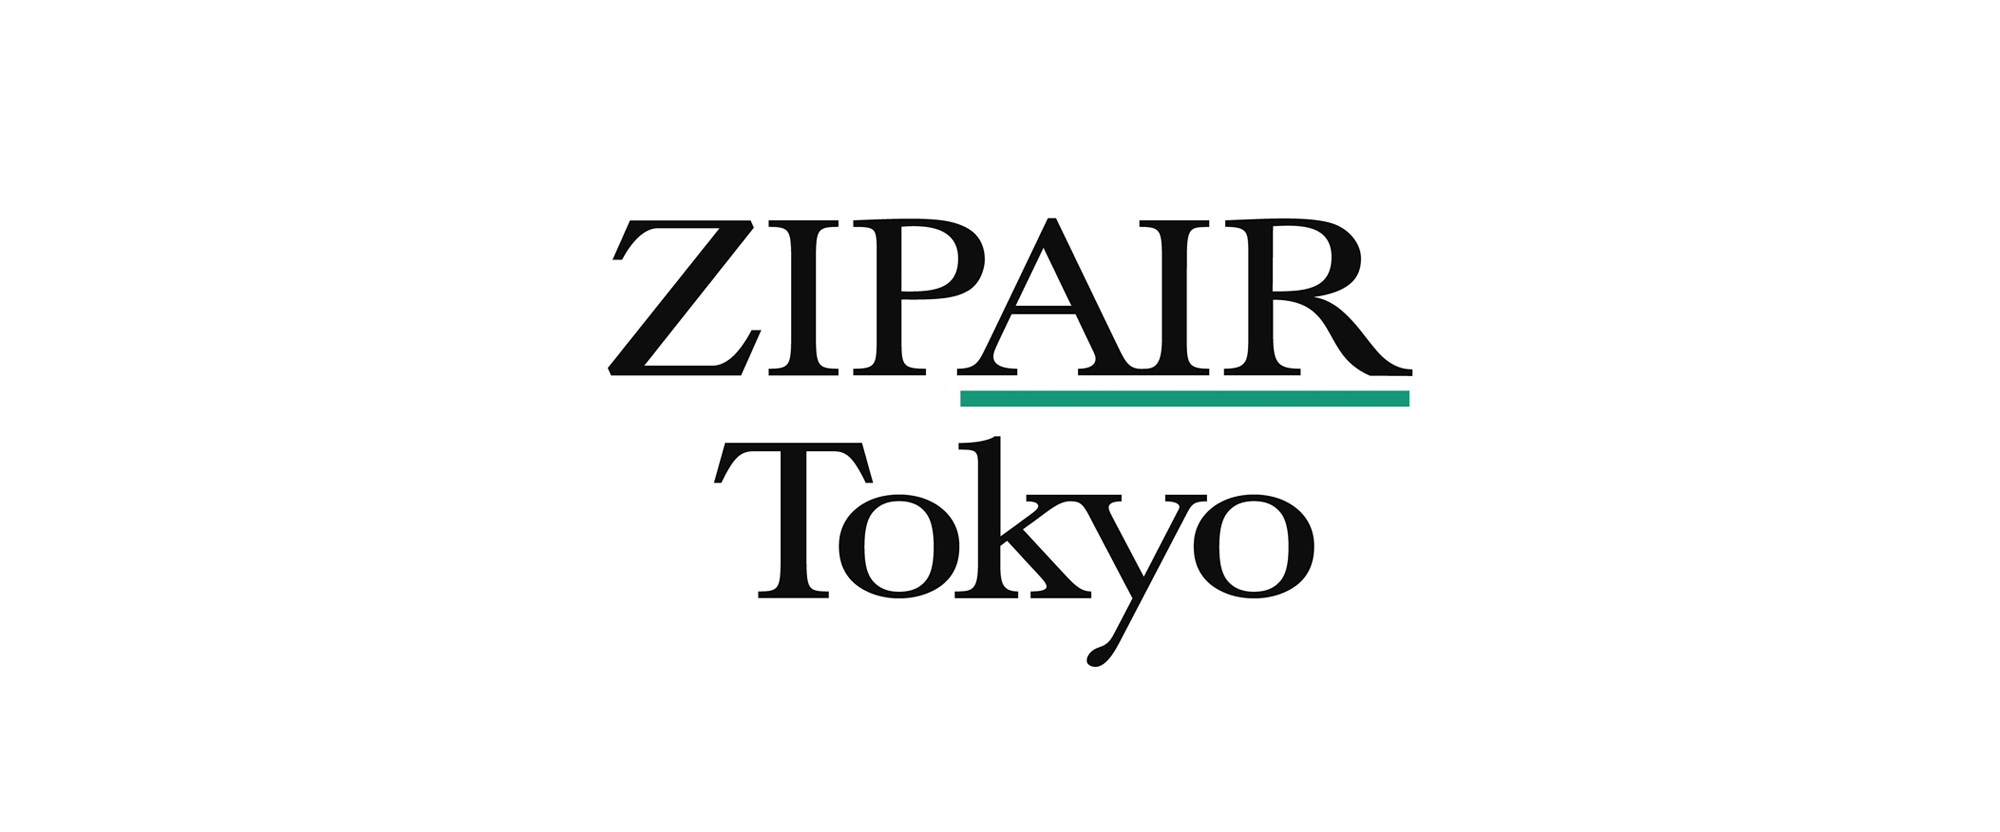 New Logo for ZIPAIR Tokyo by Six Inc.